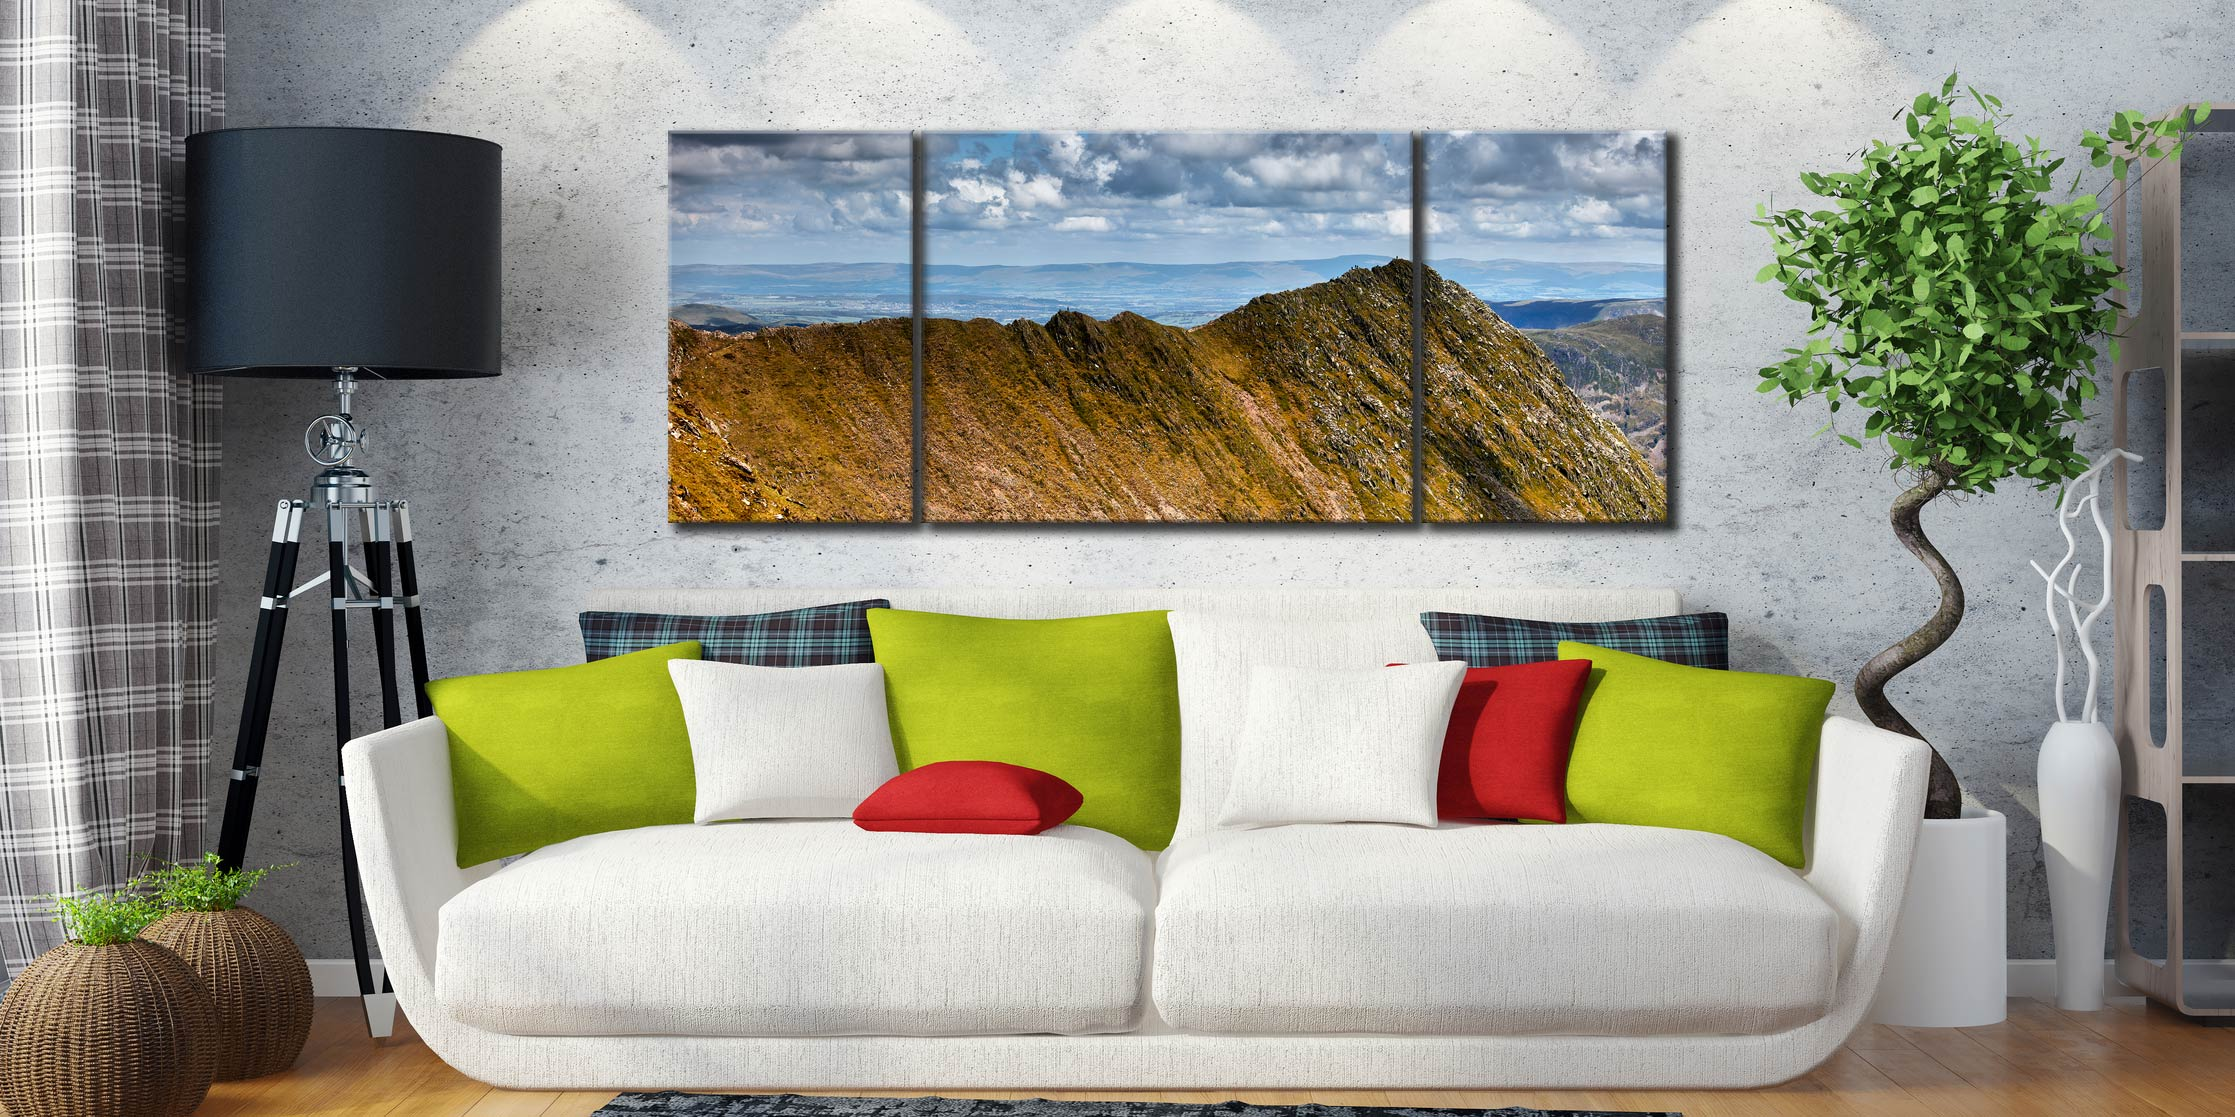 Striding Edge - 3 Panel Wide Mid Canvas on Wall